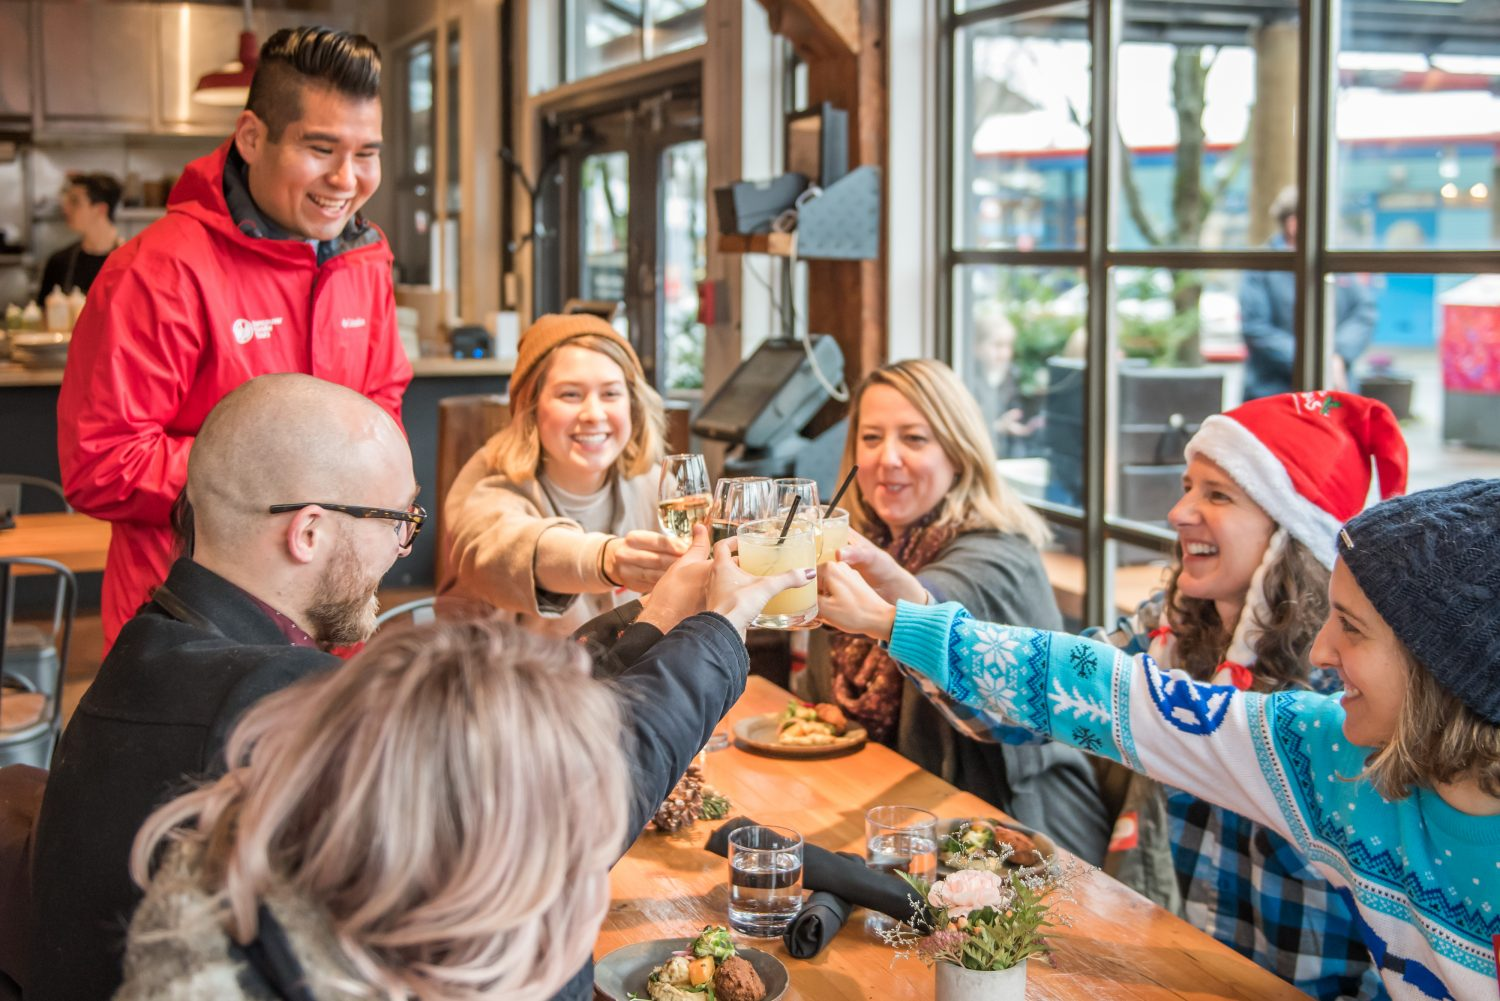 Vancouver Food Tour - How to spend Holidays in Vancouver